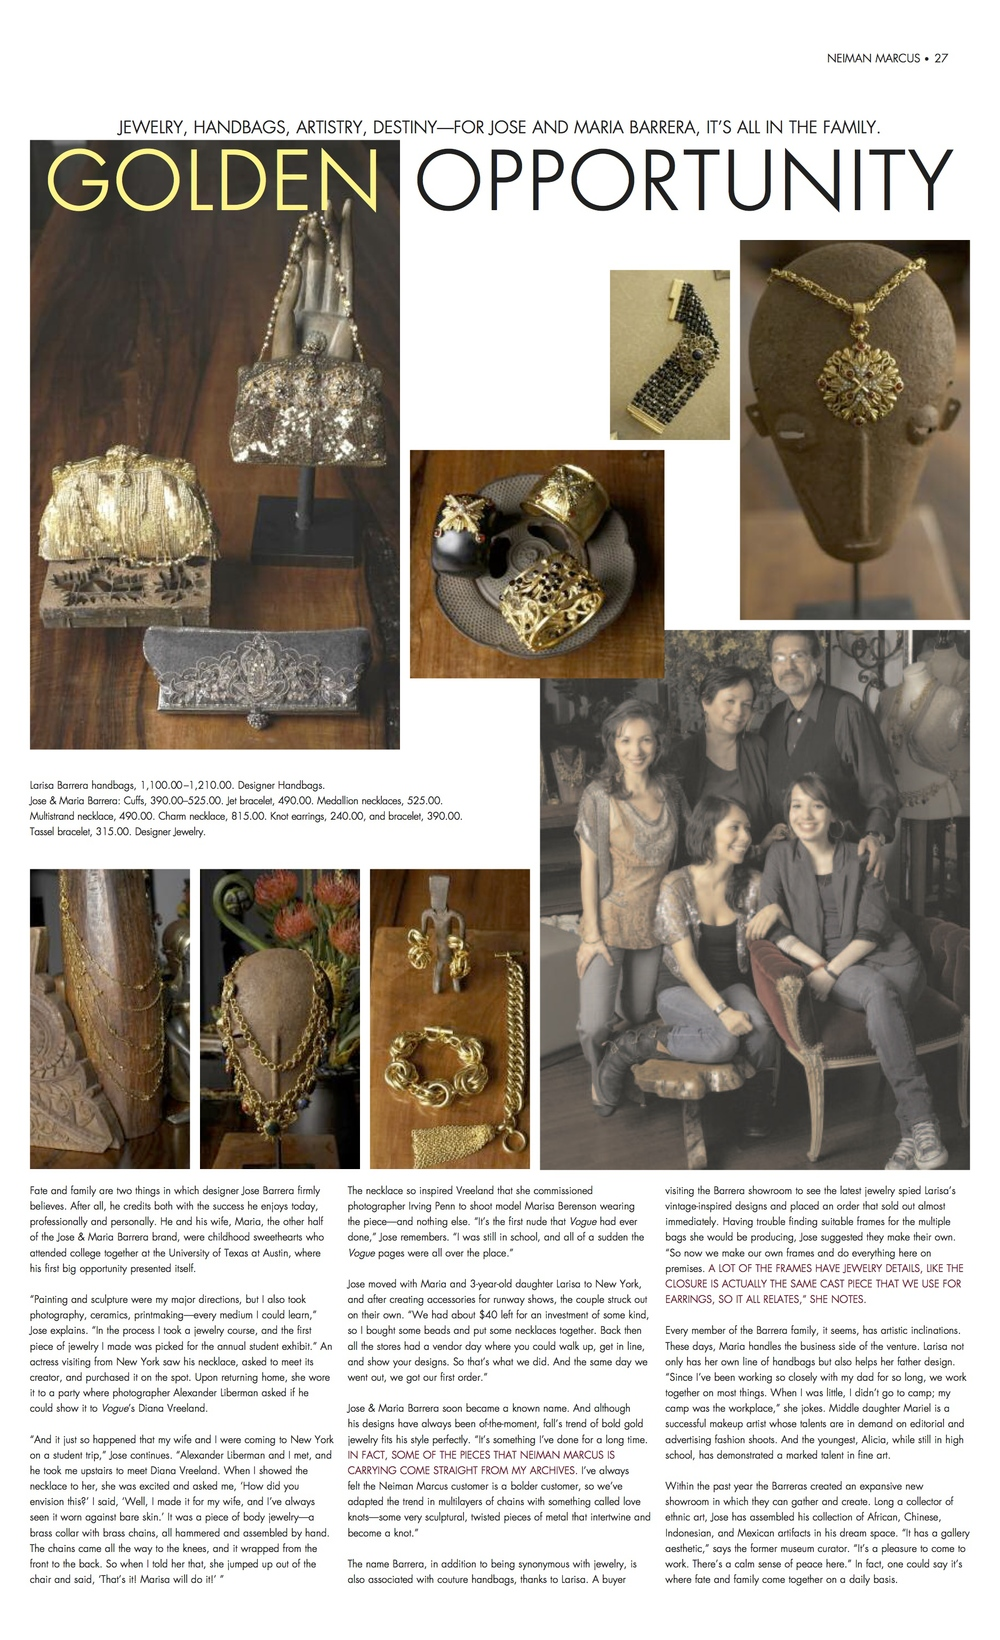 Neiman Marcus Fall 2006 -article on the Barrera family Business